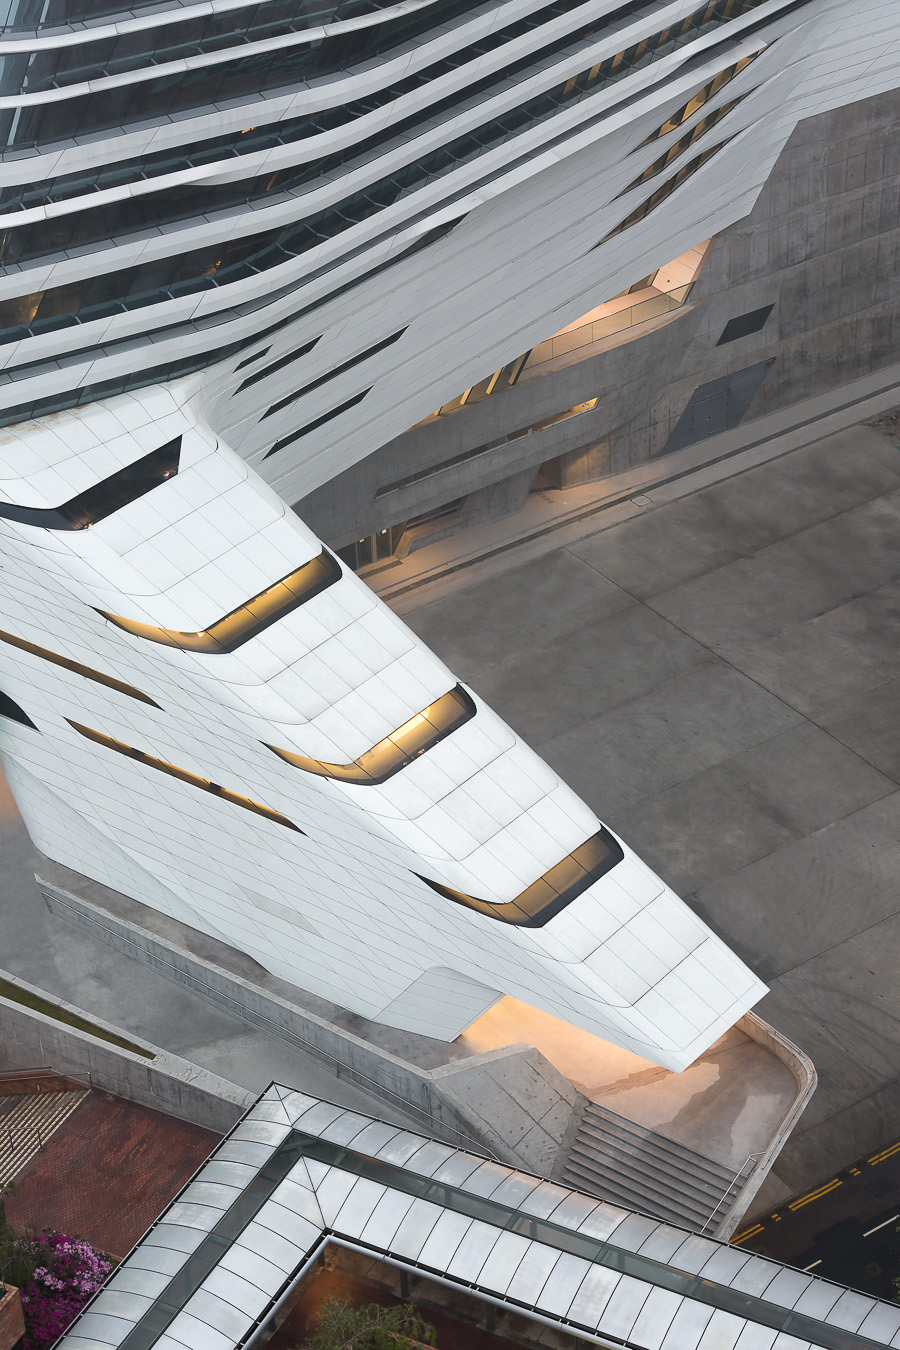 doublespace_innovation_tower_hong_kong_zaha_hadid_architects-23-Edit.jpg